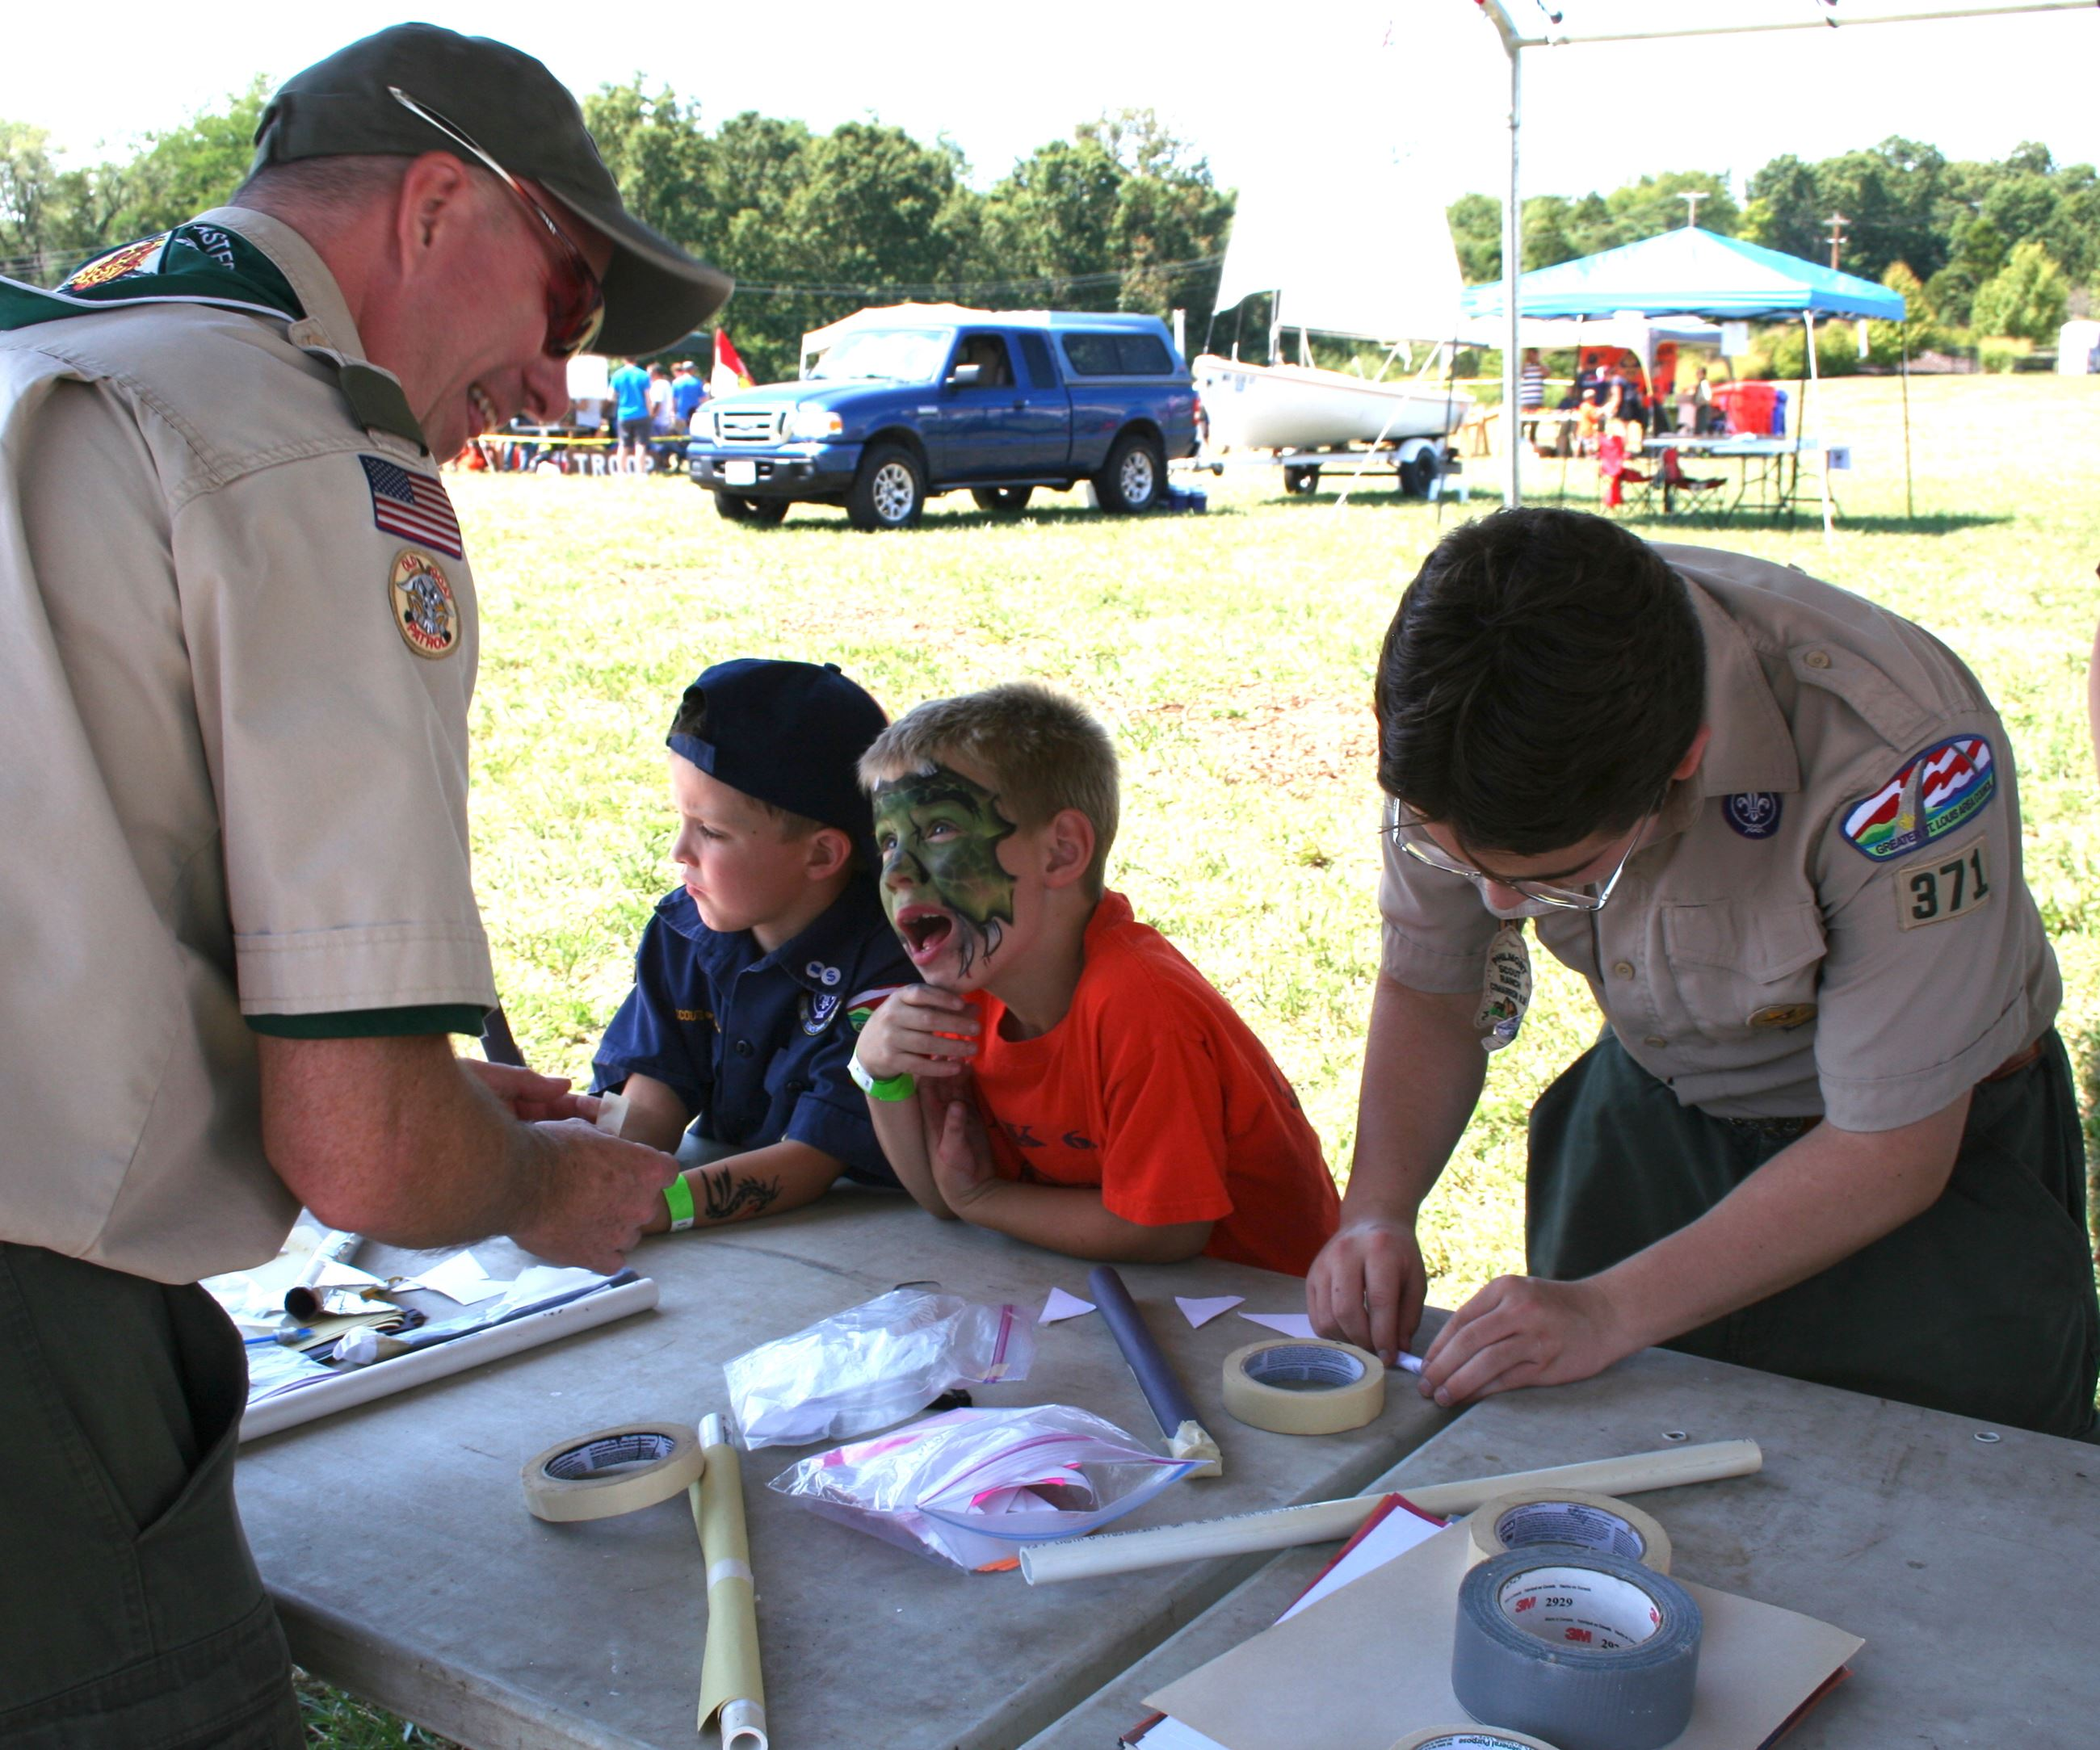 Young boys building rockets with the Boys Scouts